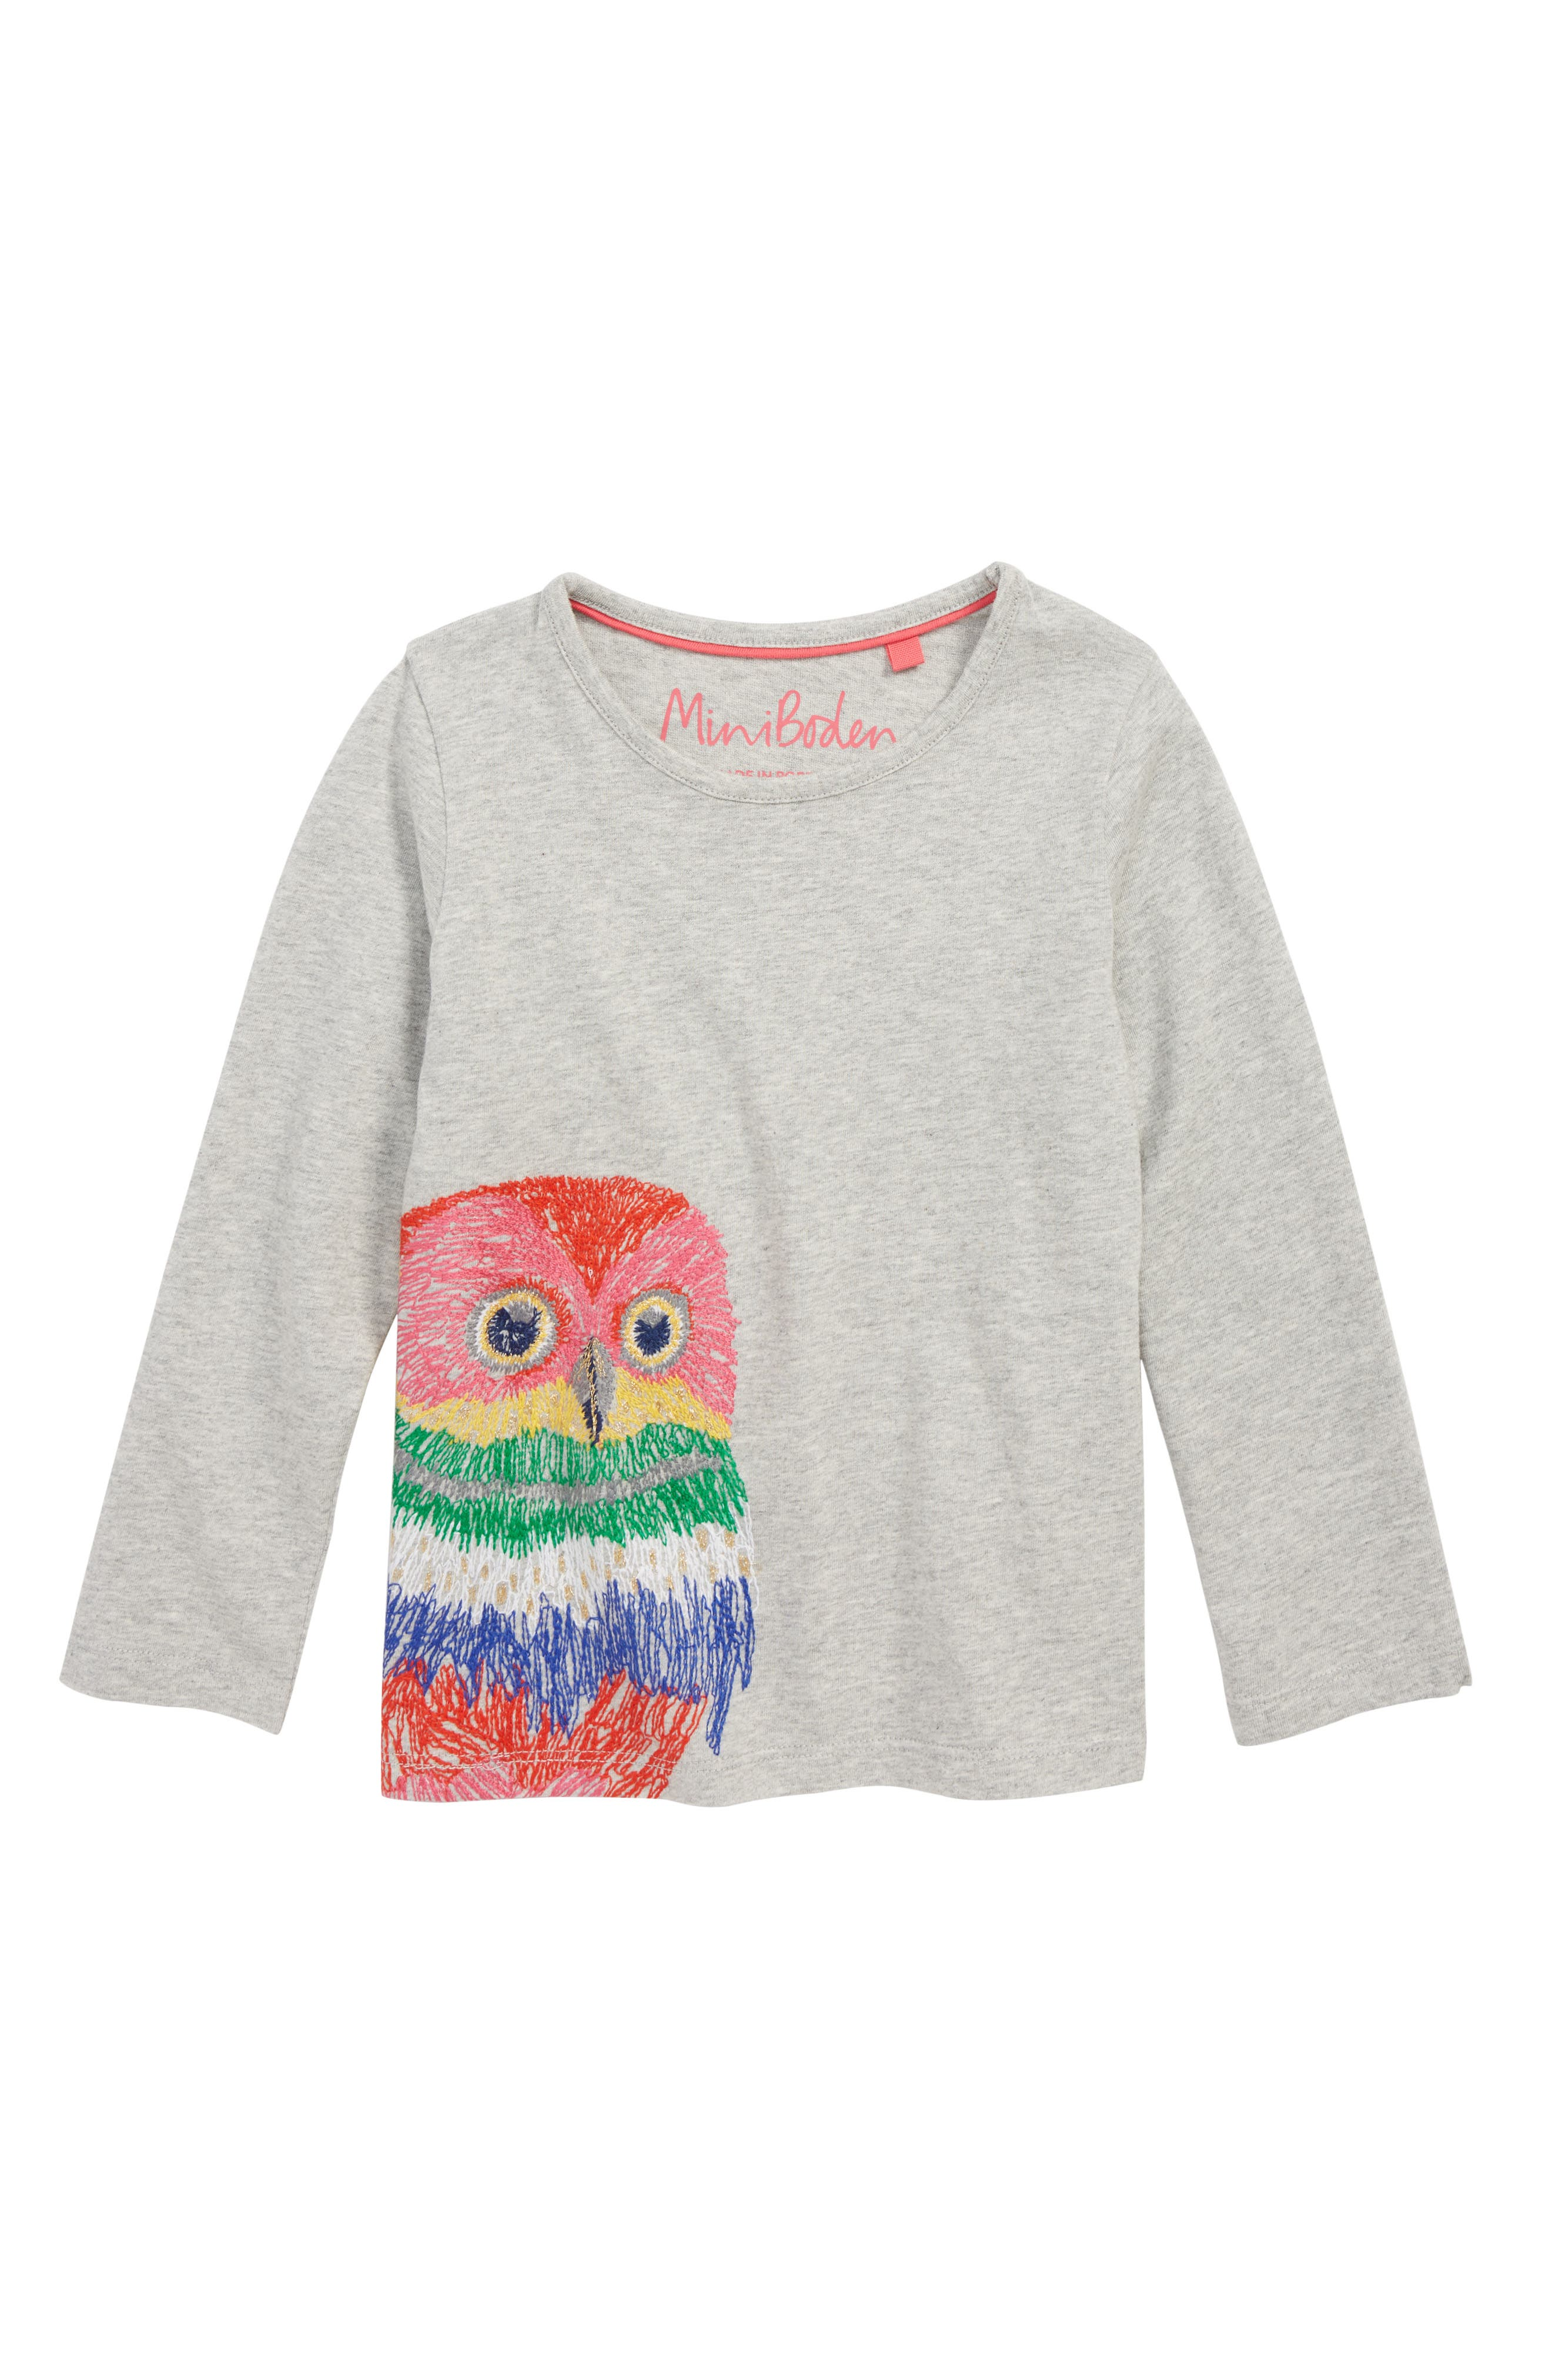 Superstitch Appliqué Tee,                             Main thumbnail 1, color,                             GREY MARLE OWL